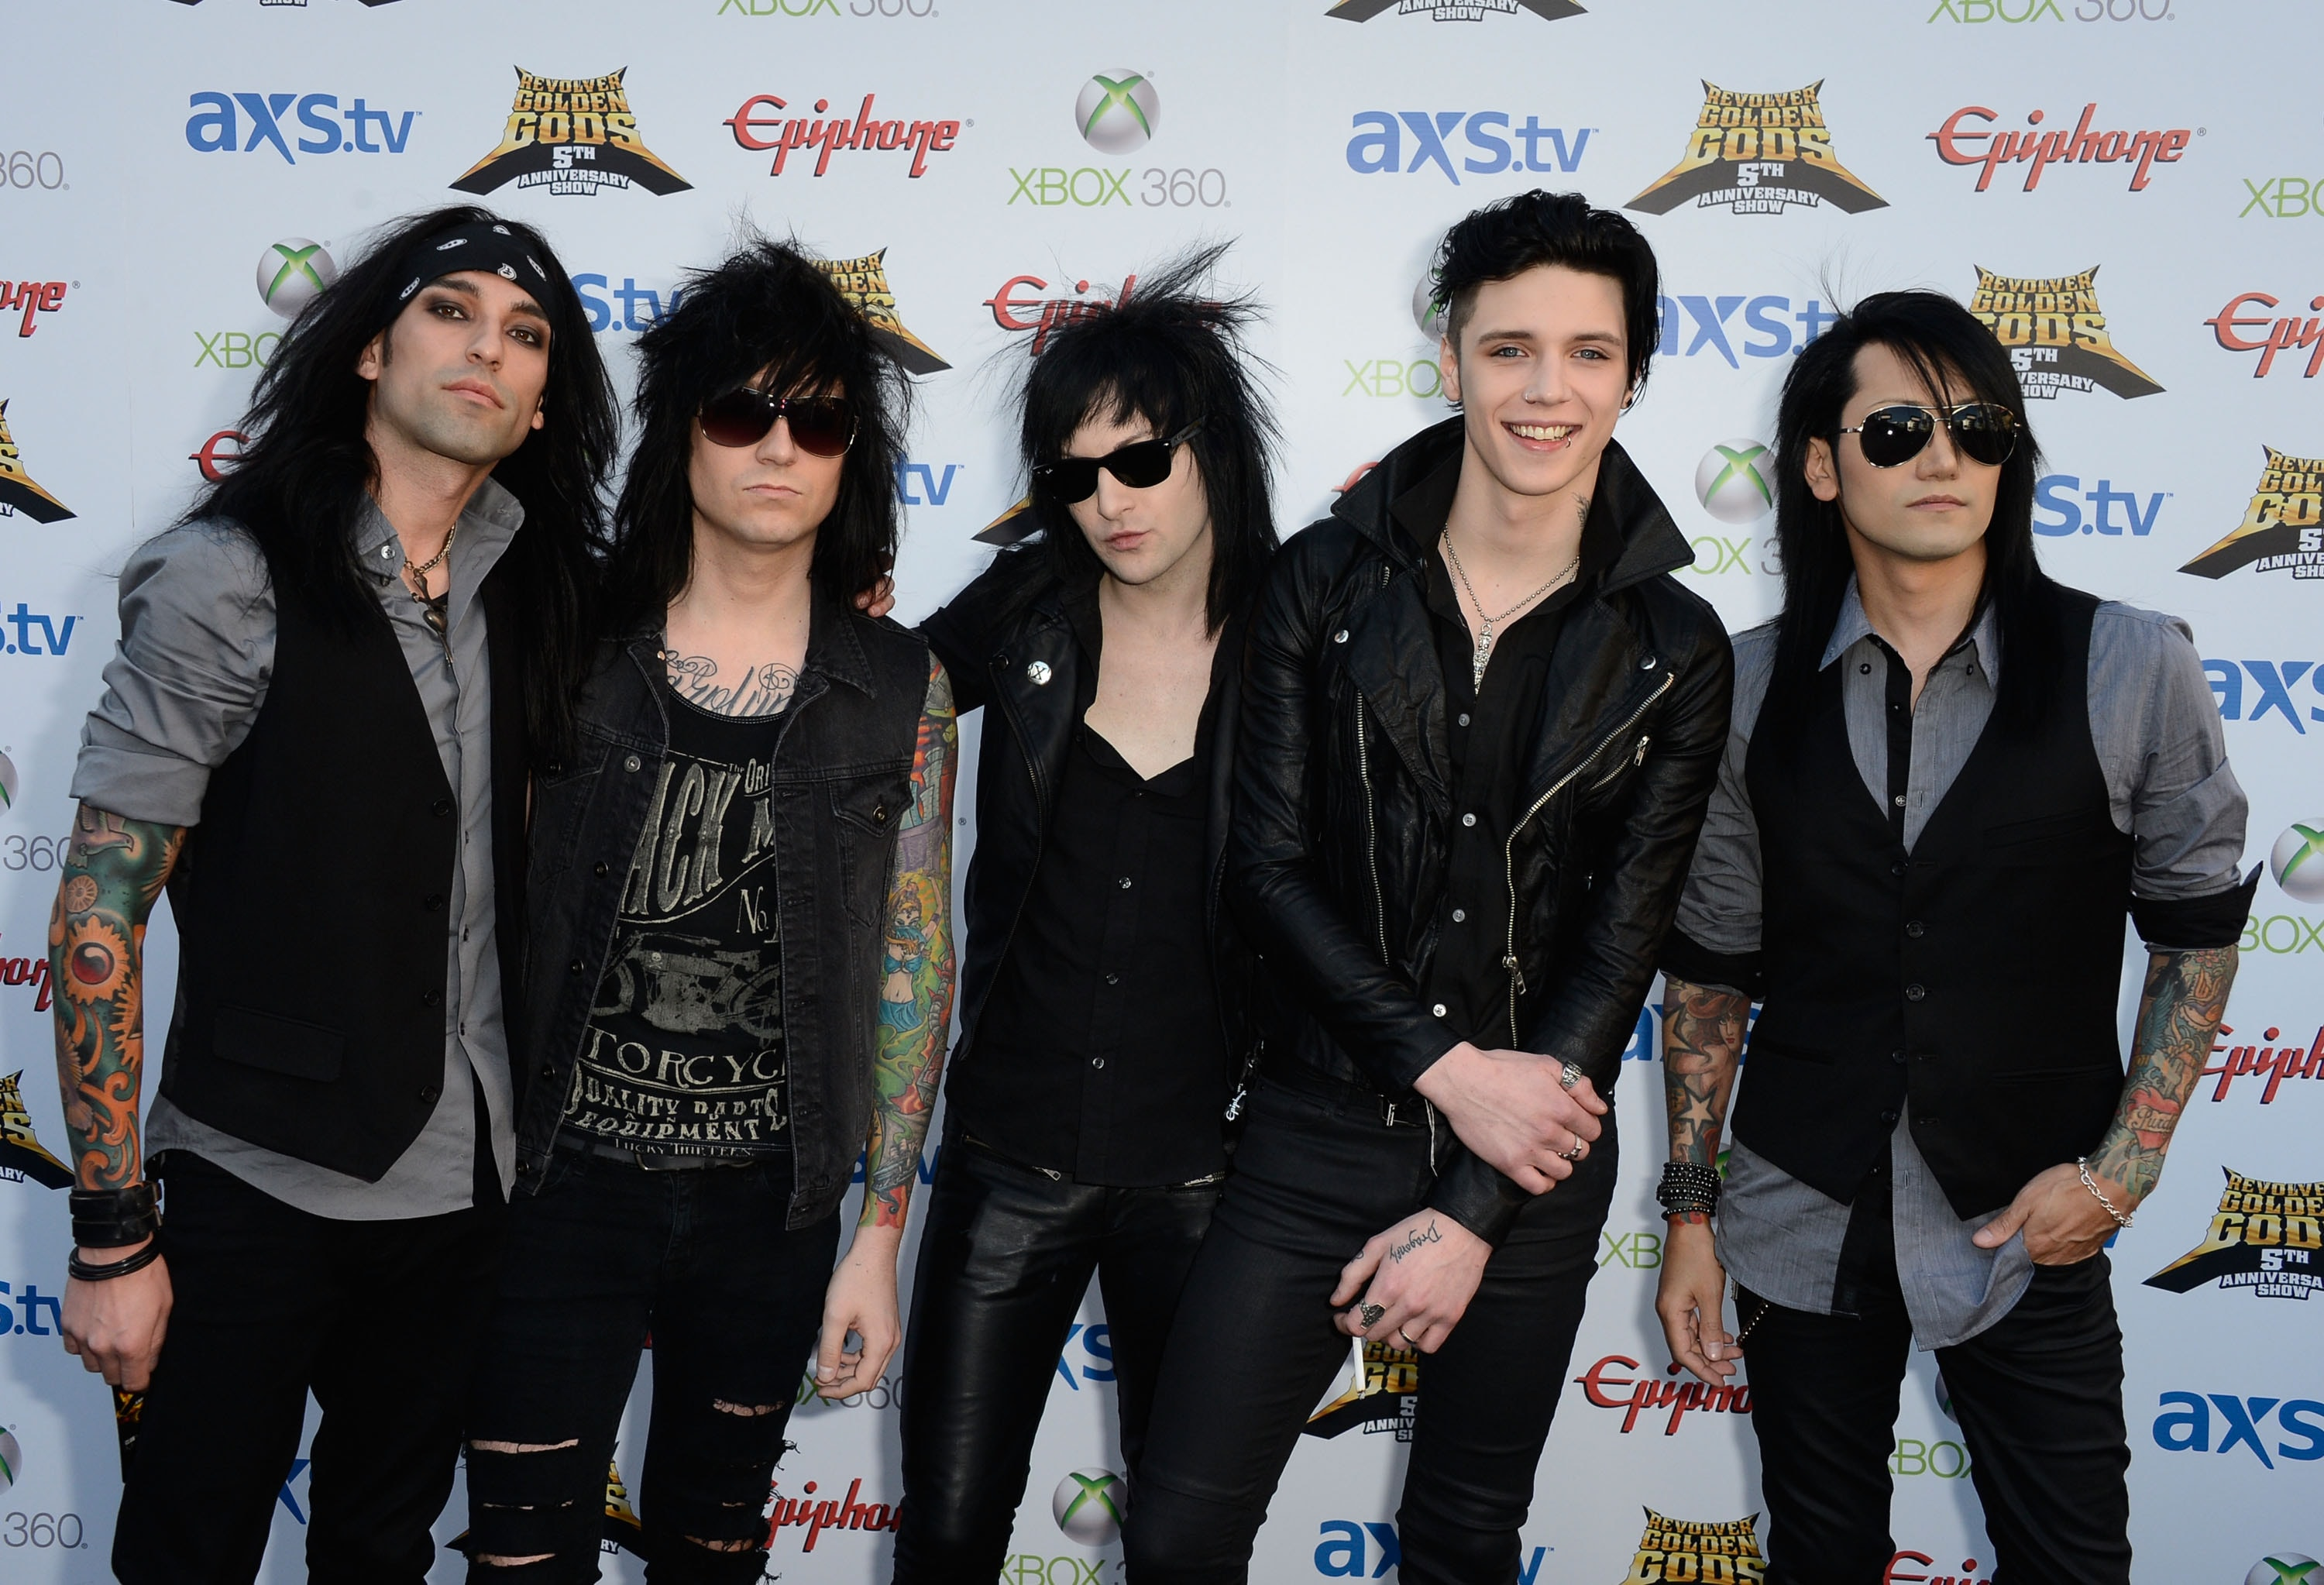 LOS ANGELES, CA - MAY 02: Black Veil Brides arrive at the 5th Annual Revolver Golden Gods Award Show at Club Nokia on May 2, 2013 in Los Angeles, California.